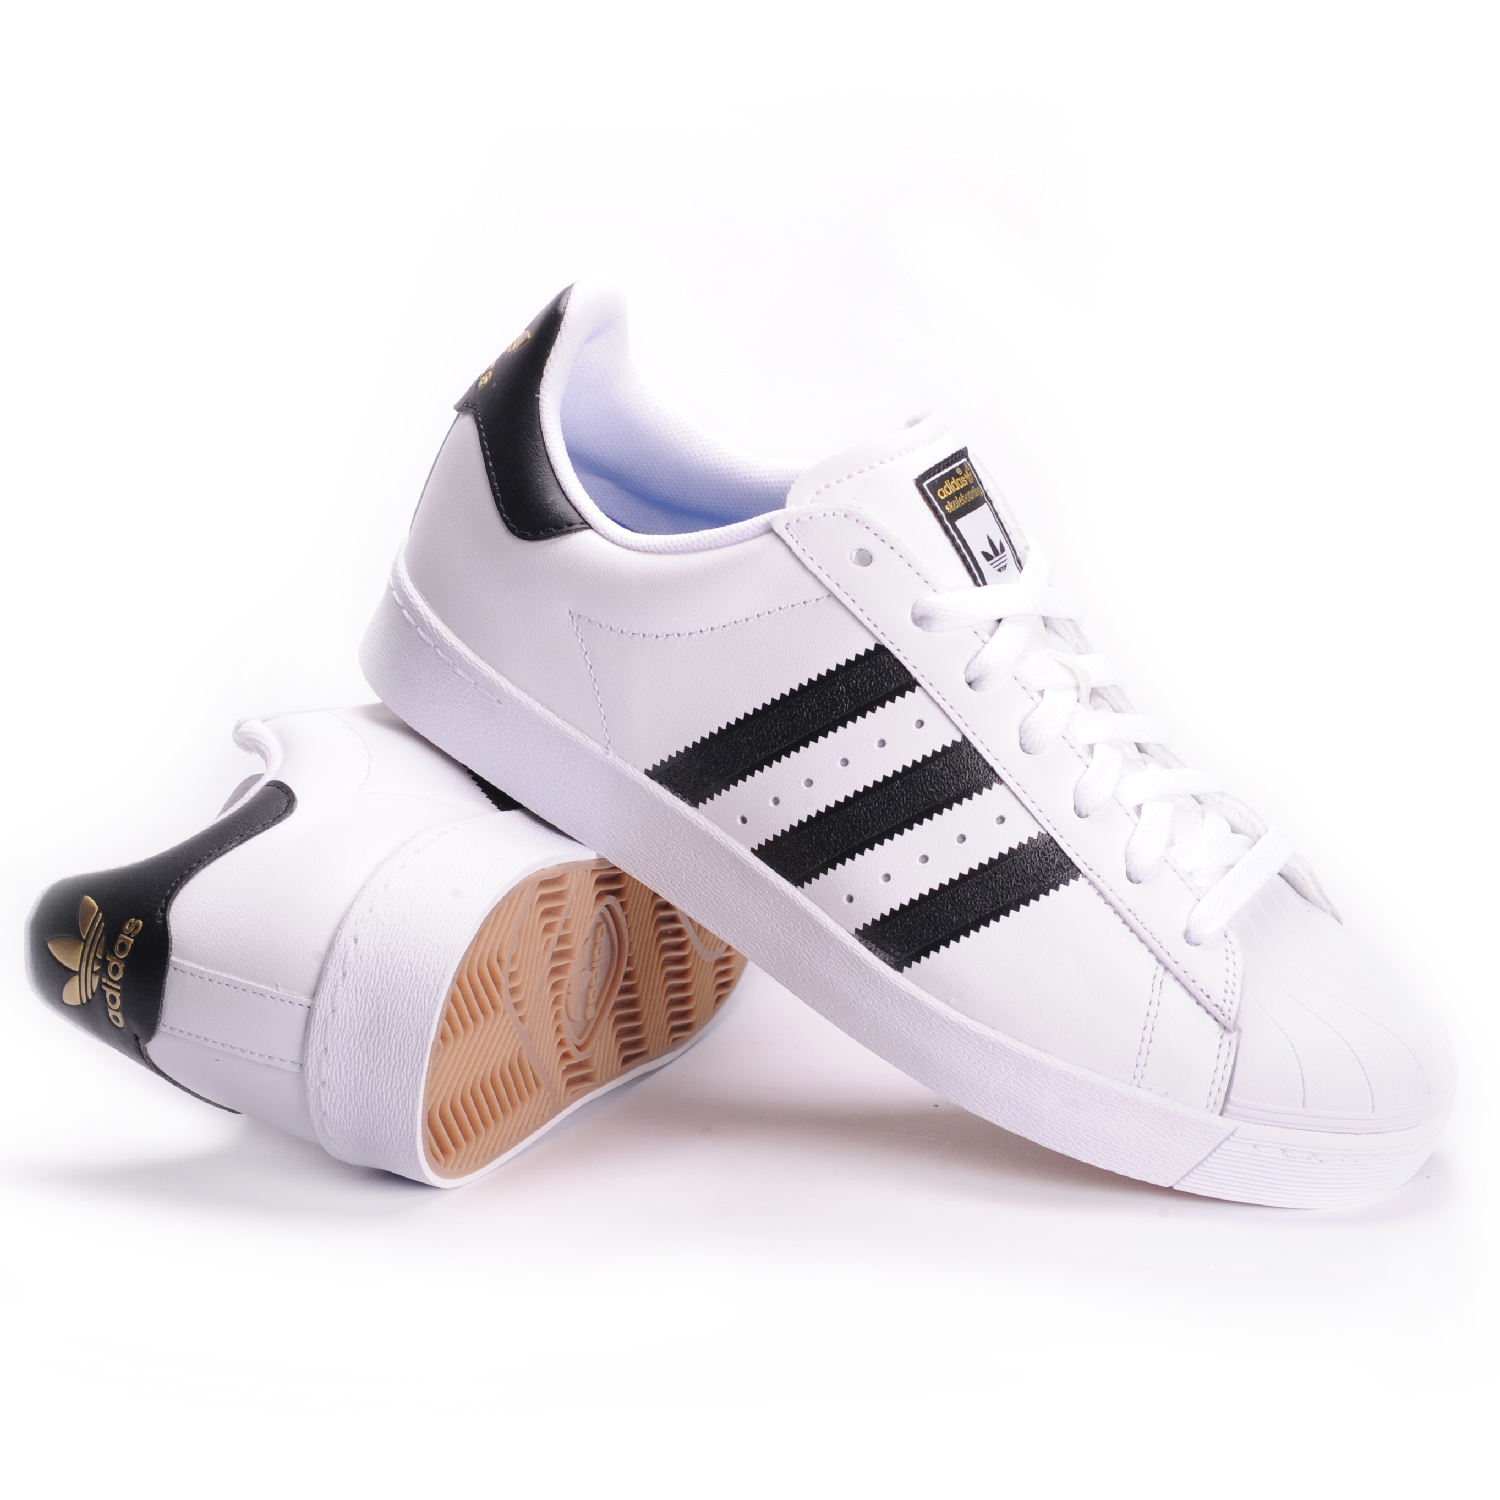 Adidas Men's Superstar Foundation Leather Sneaker, White/Navy